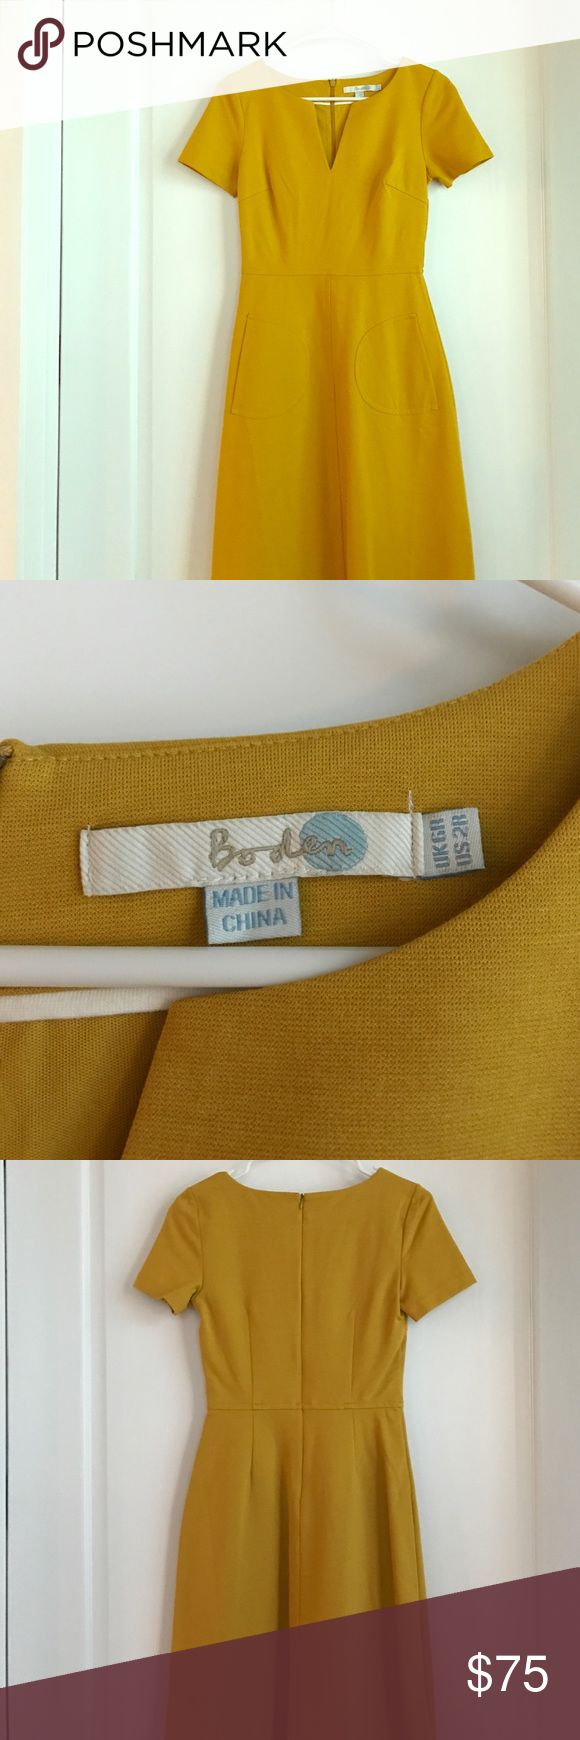 Mustard yellow Boden dress Super cute mustard yellow dress from Boden. Perfect for work with a skinny belt. Boden Dresses Mini